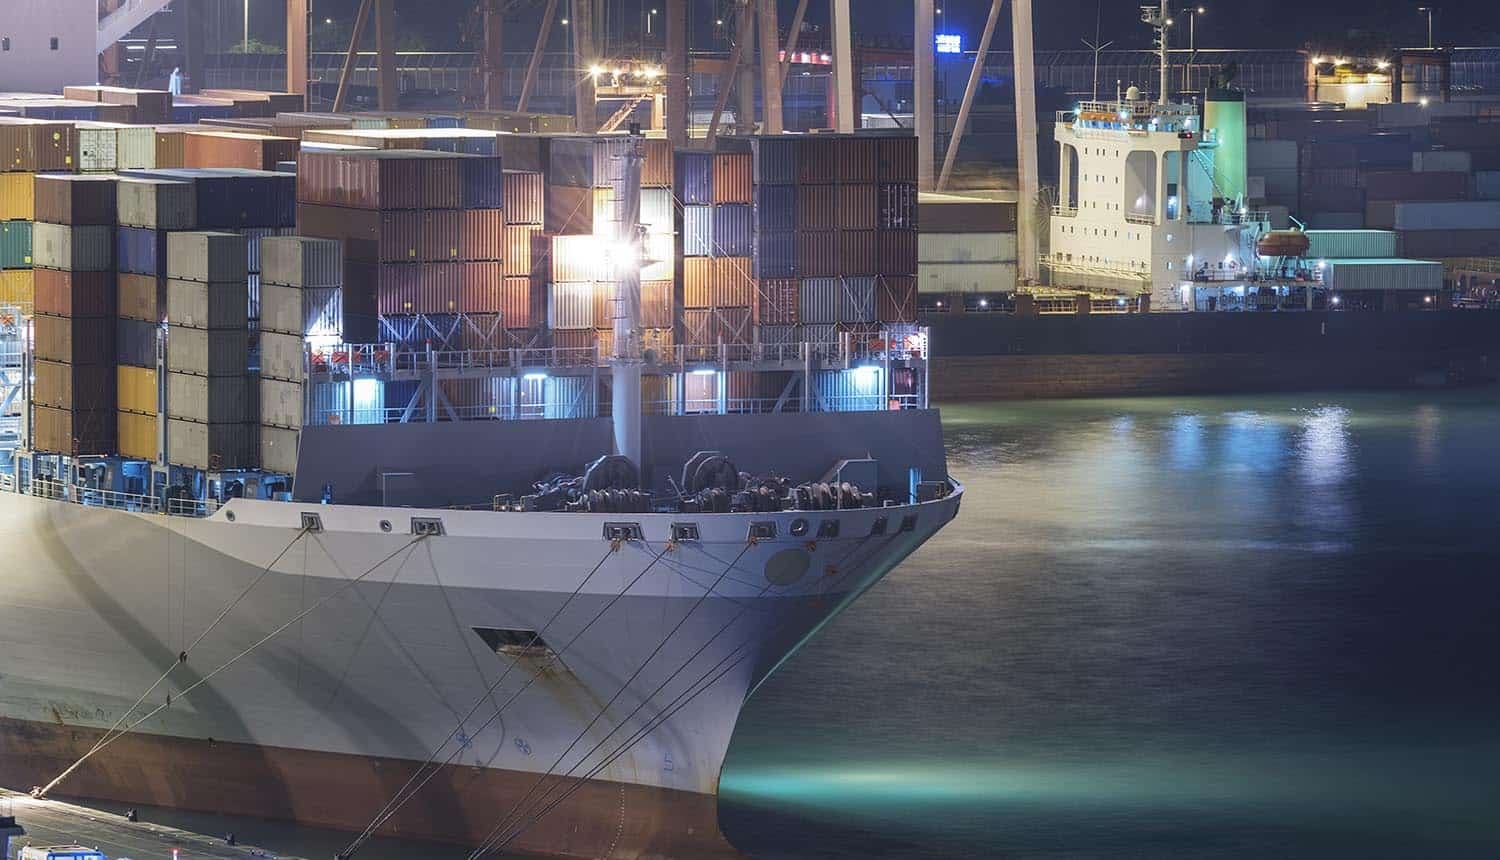 Cargo port in Hong Kong at night showing maritime cyber attacks